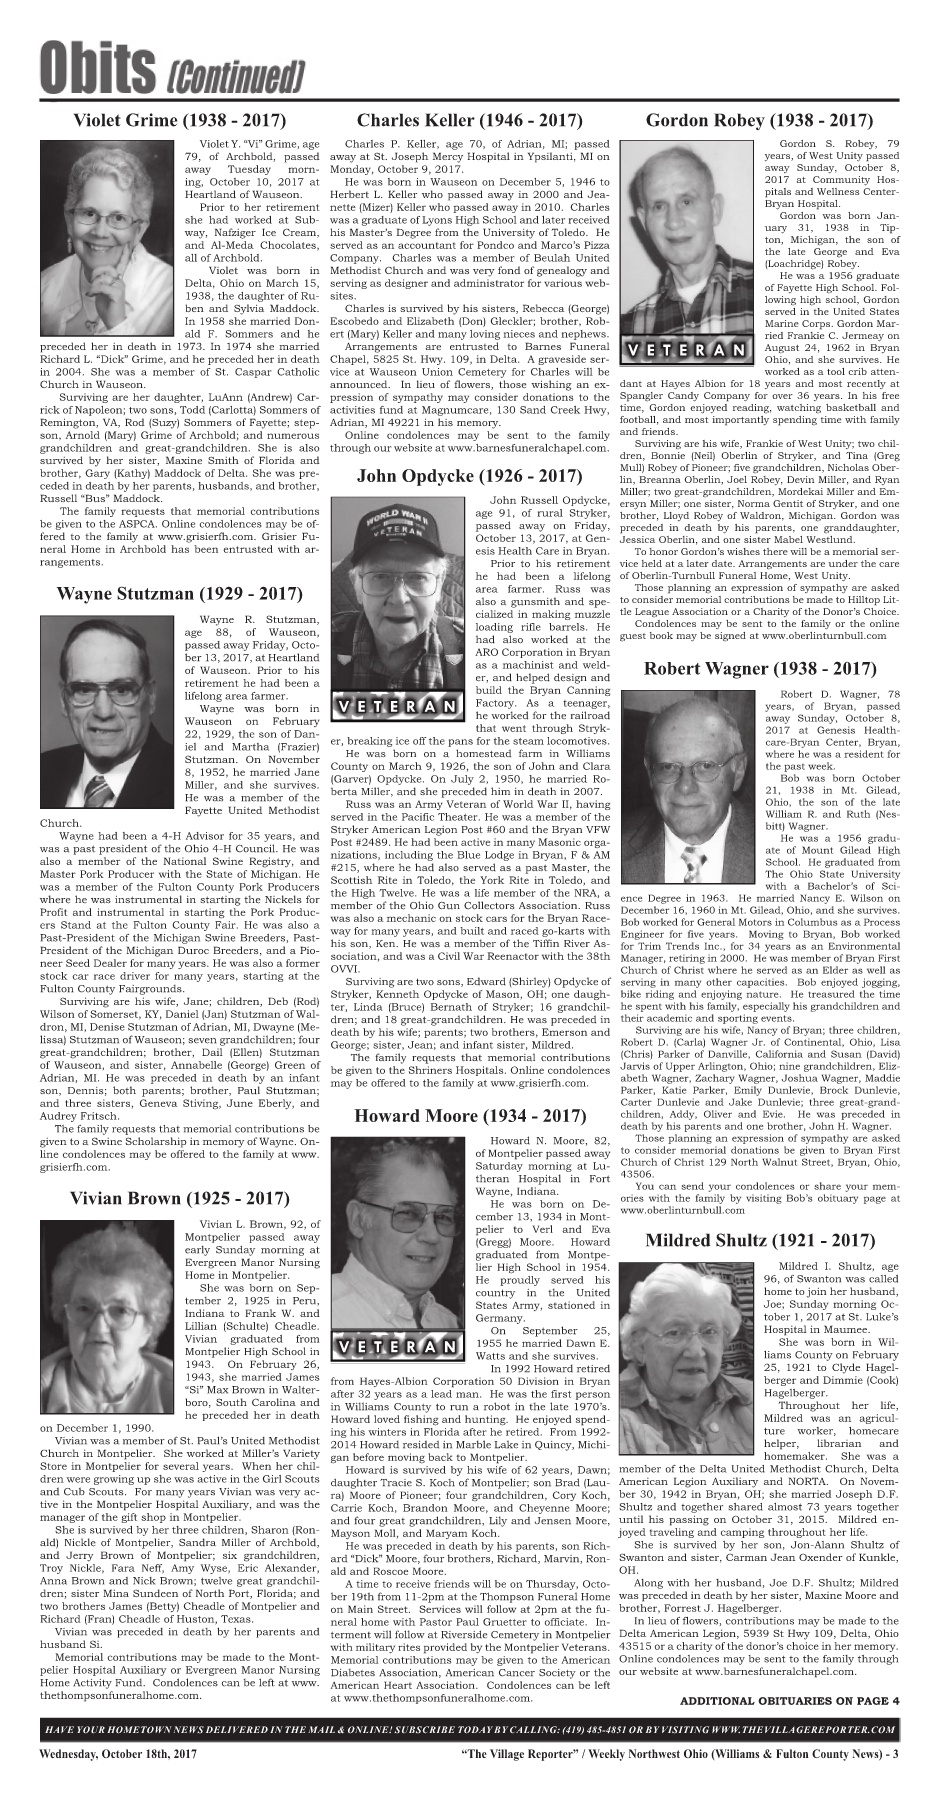 The Village Reporter - October 18th, 2017 Pages 1 - 42